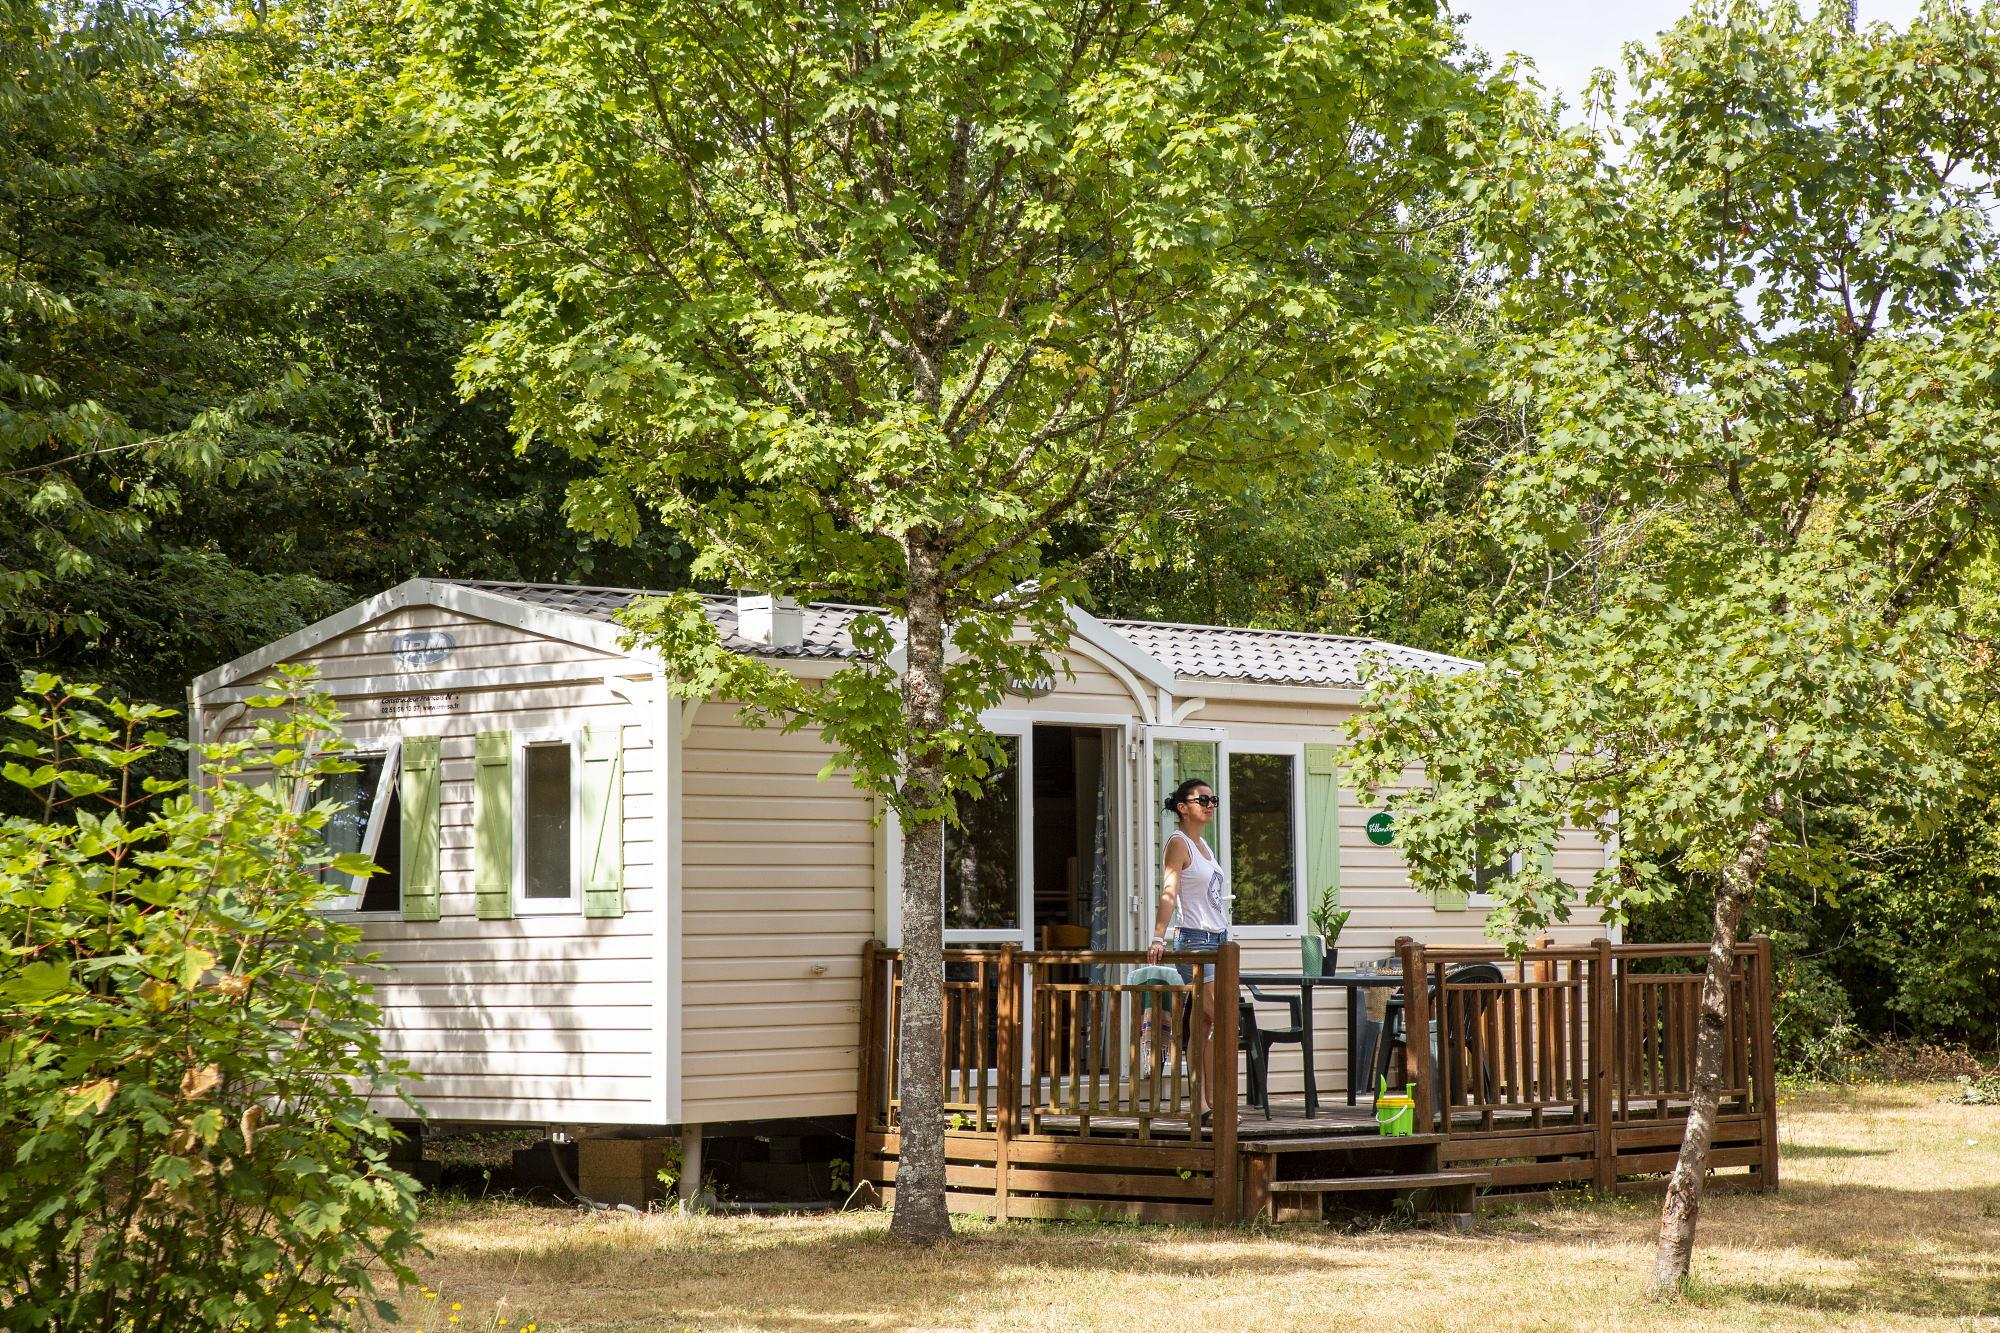 Establishment Camping Les Peupliers - Montlouis Sur Loire